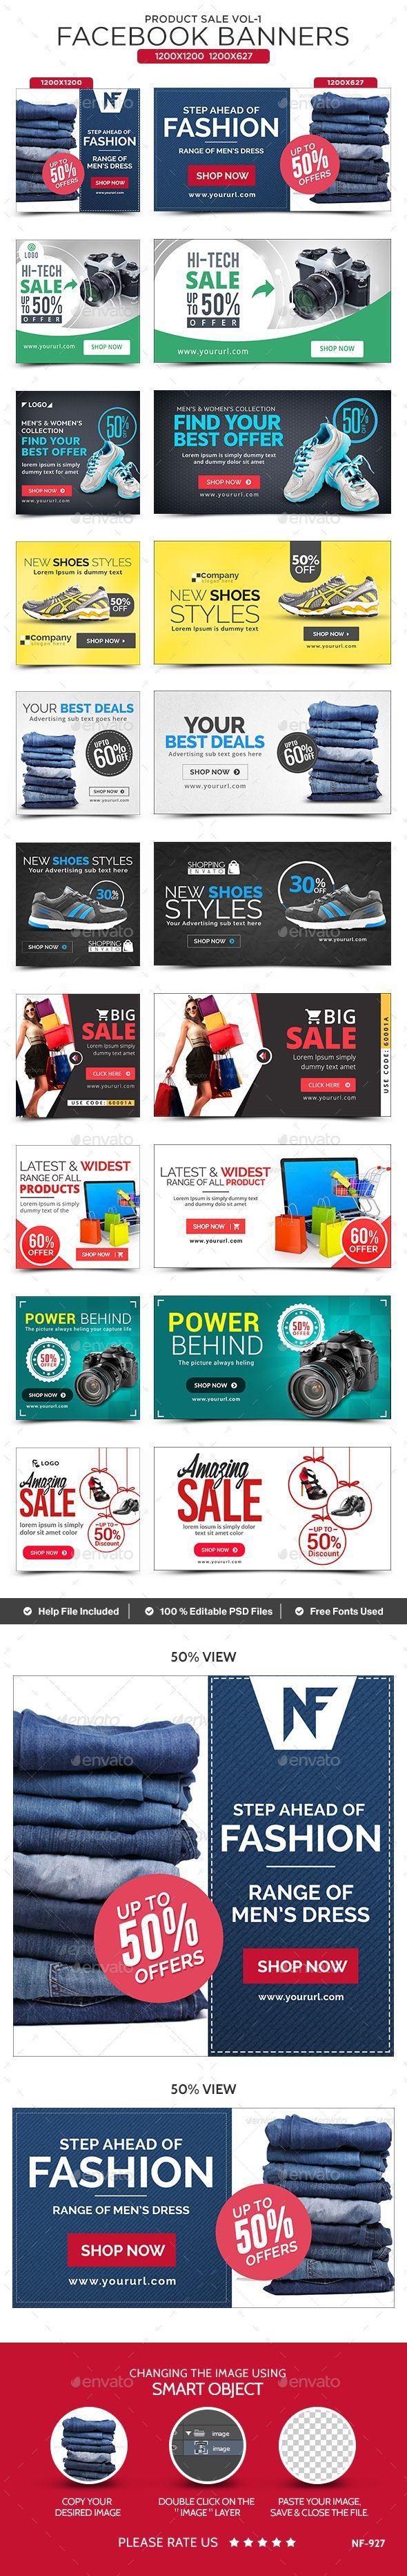 Product Sale Facebook Banners - 10 Designs | Ideas for Design ...